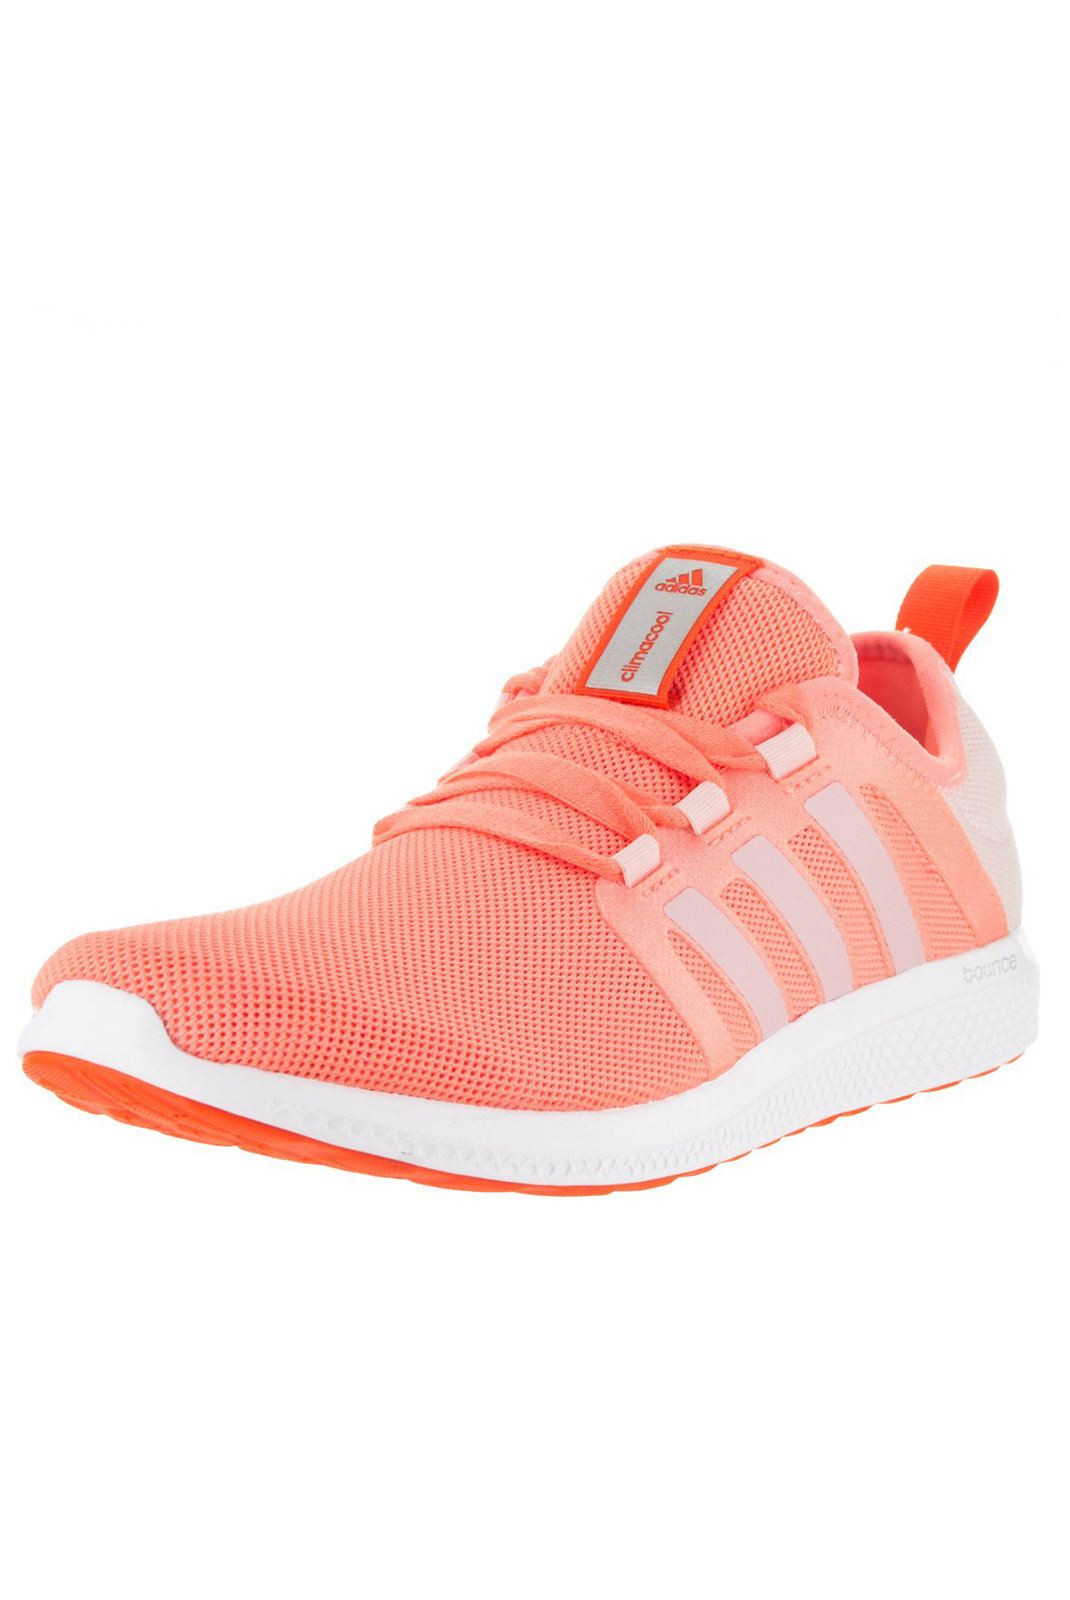 Baskets / Sneakers  Adidas S74425 cc fresh bounce w ORANGE